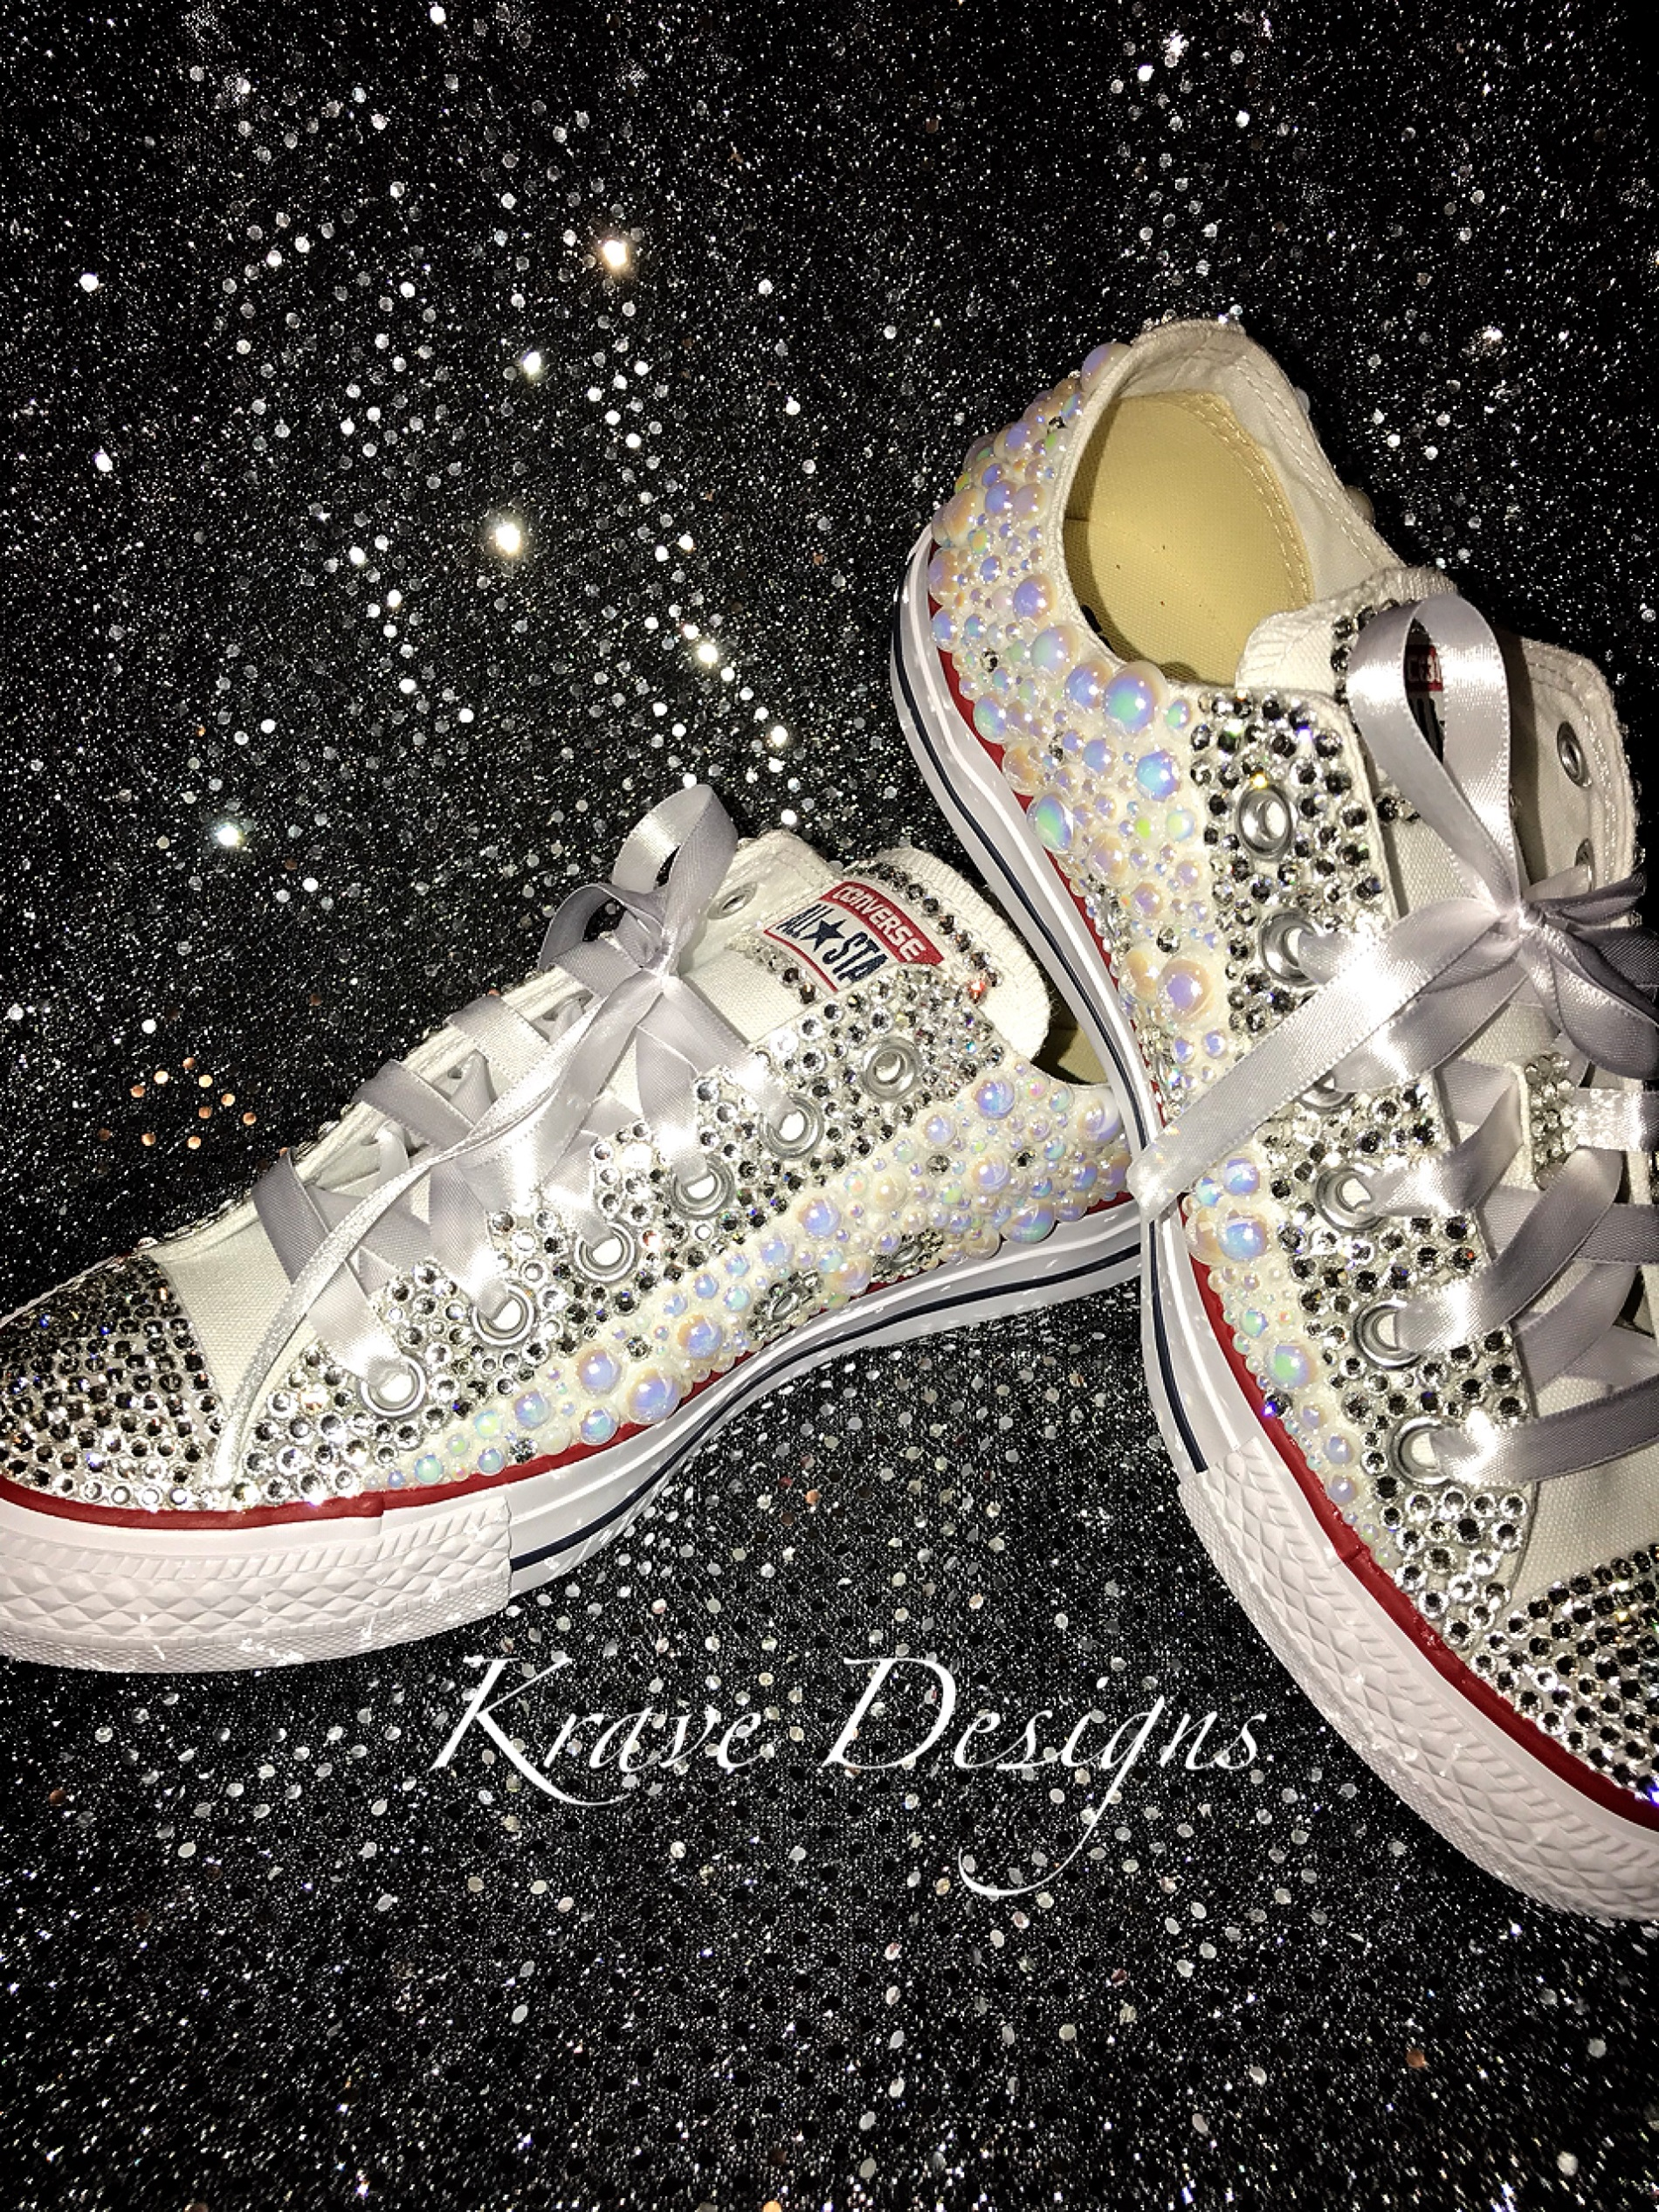 9a6102492 Adult Bling Chuck Taylor Lo-Top Shoes